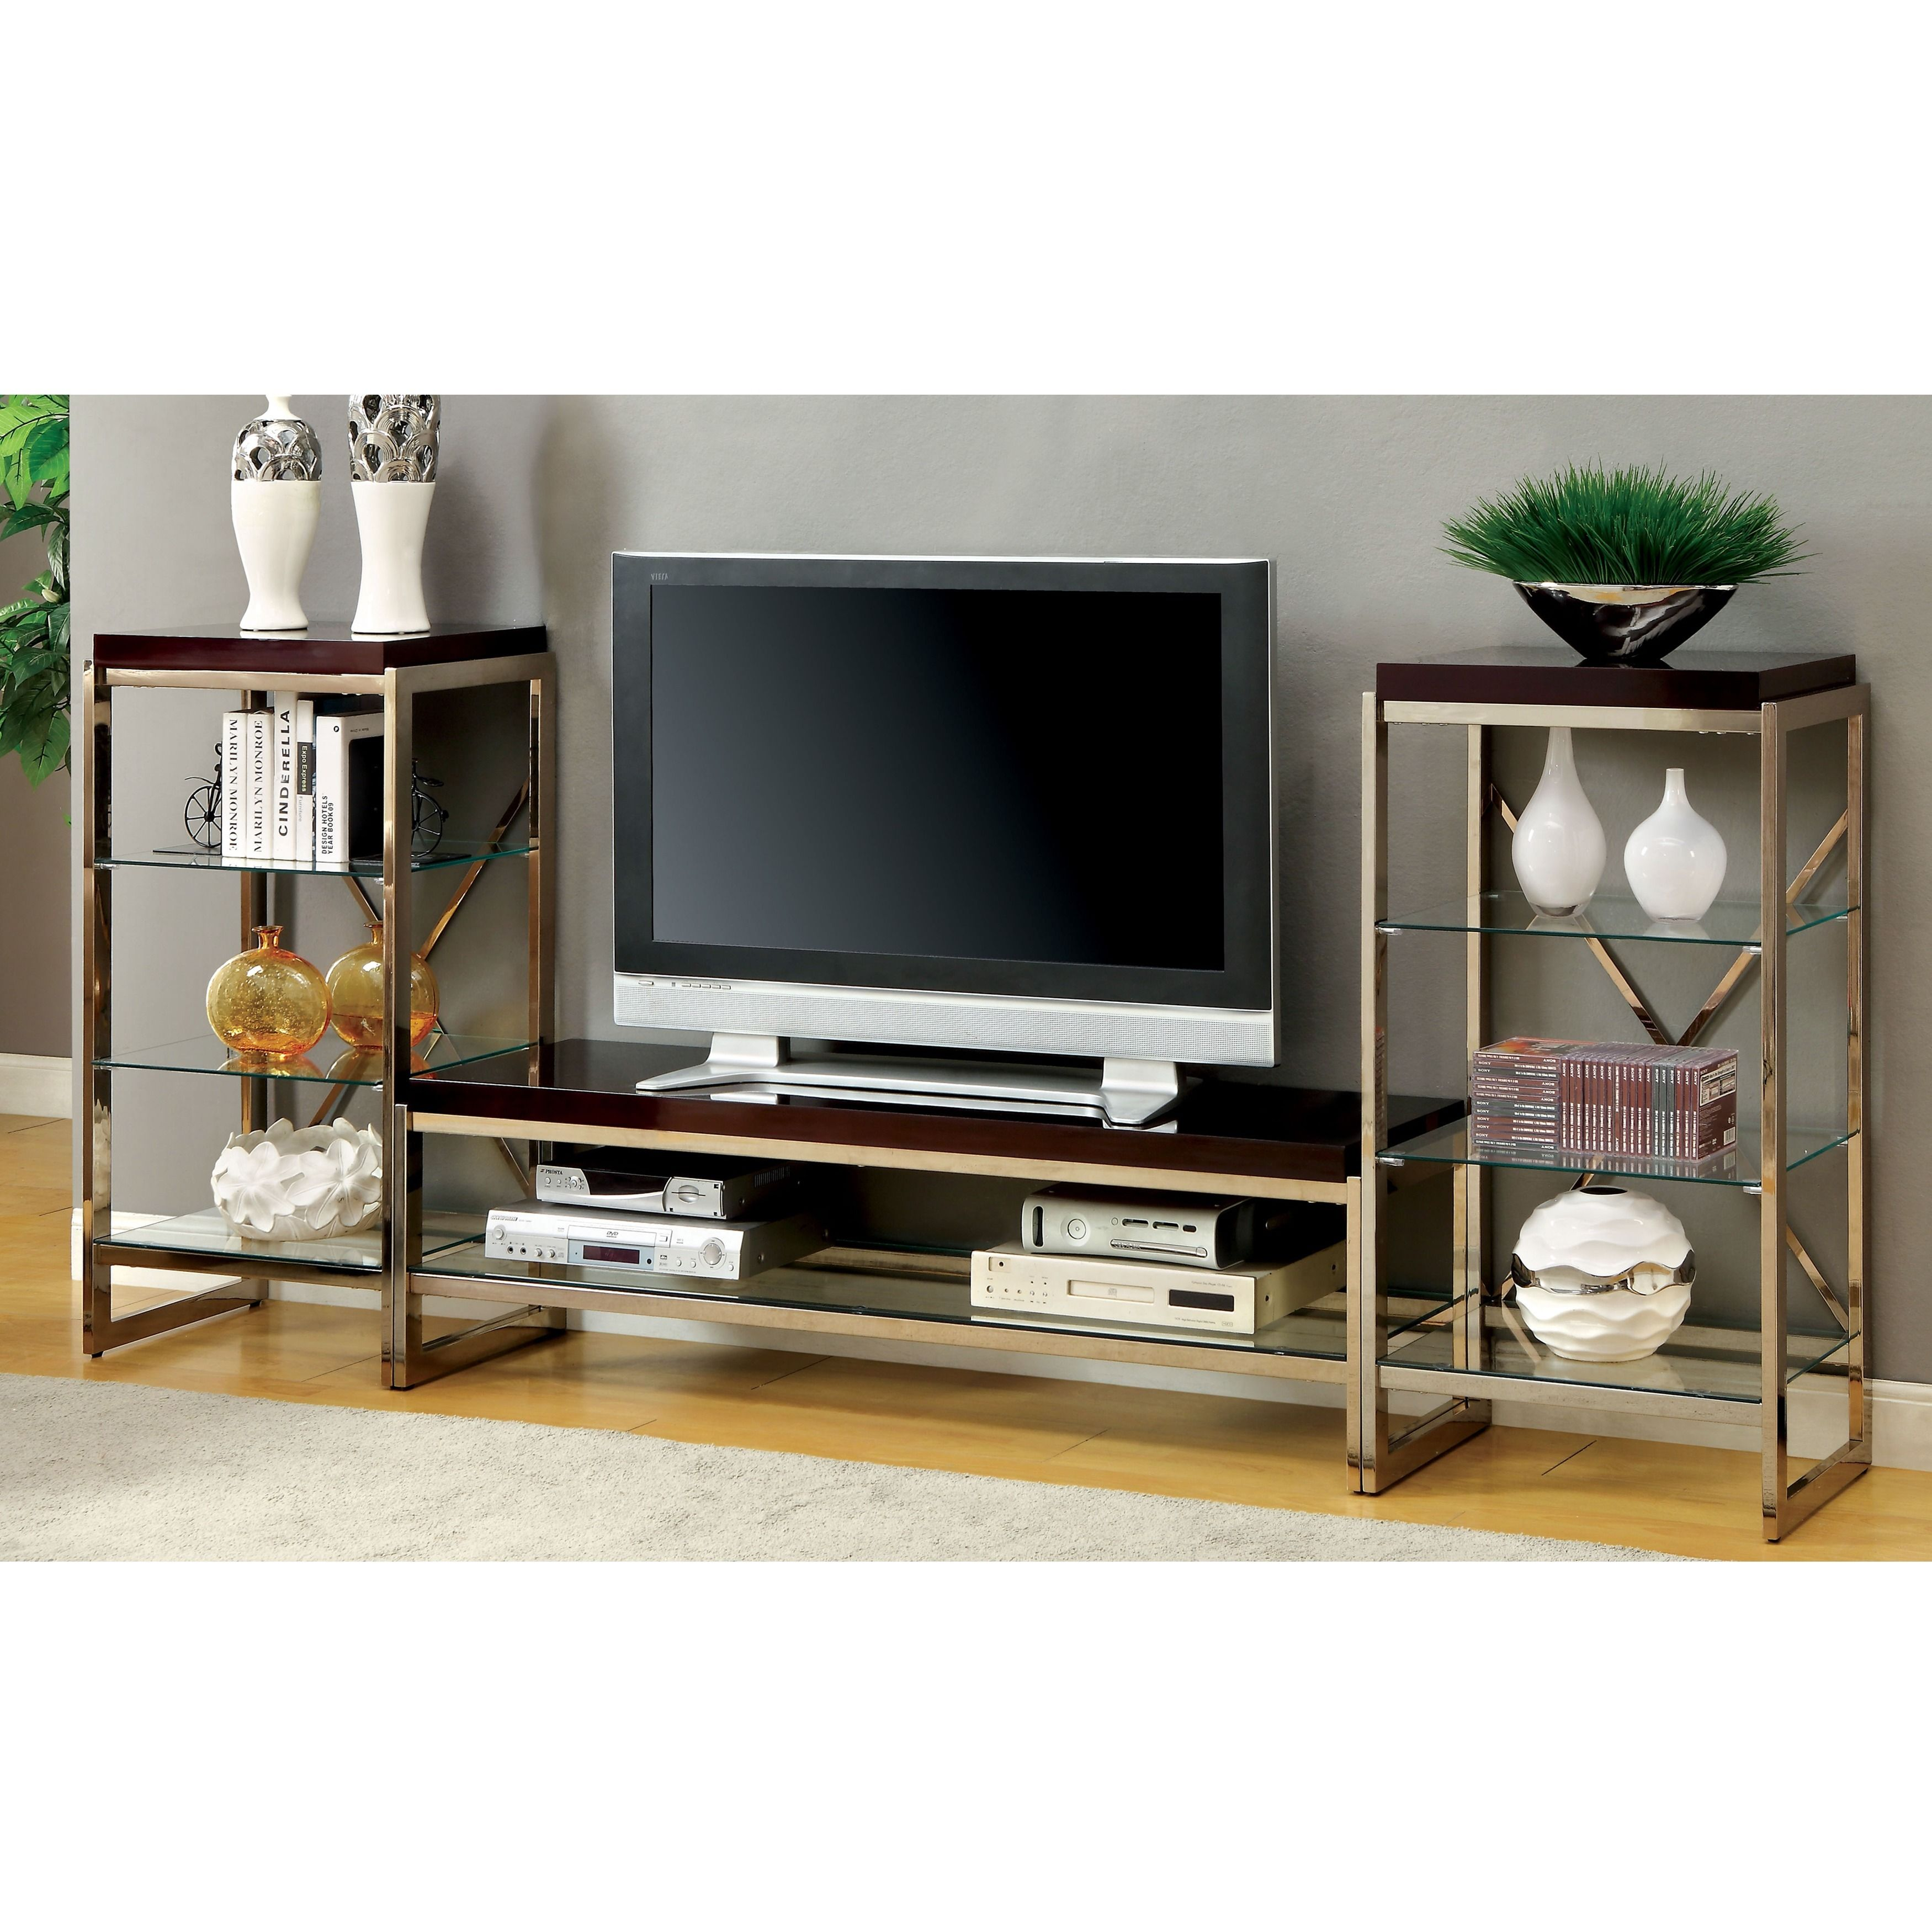 Furniture of America Jacie Contemporary 3 piece Gold Entertainment